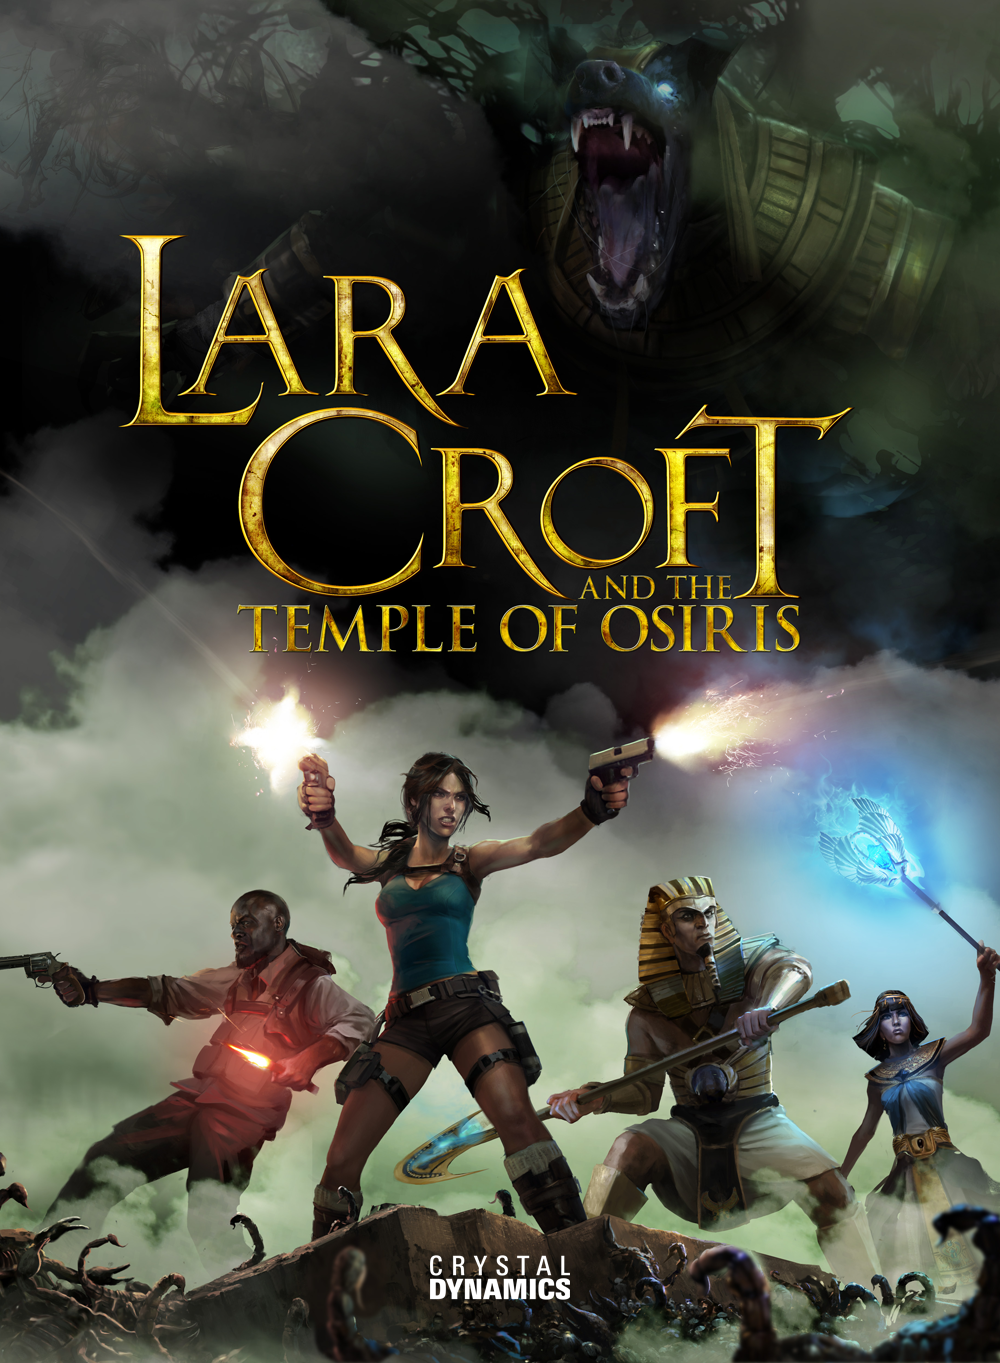 Film Lara Croft and the Temple of Osiris (2014)  - Jeu vidéo